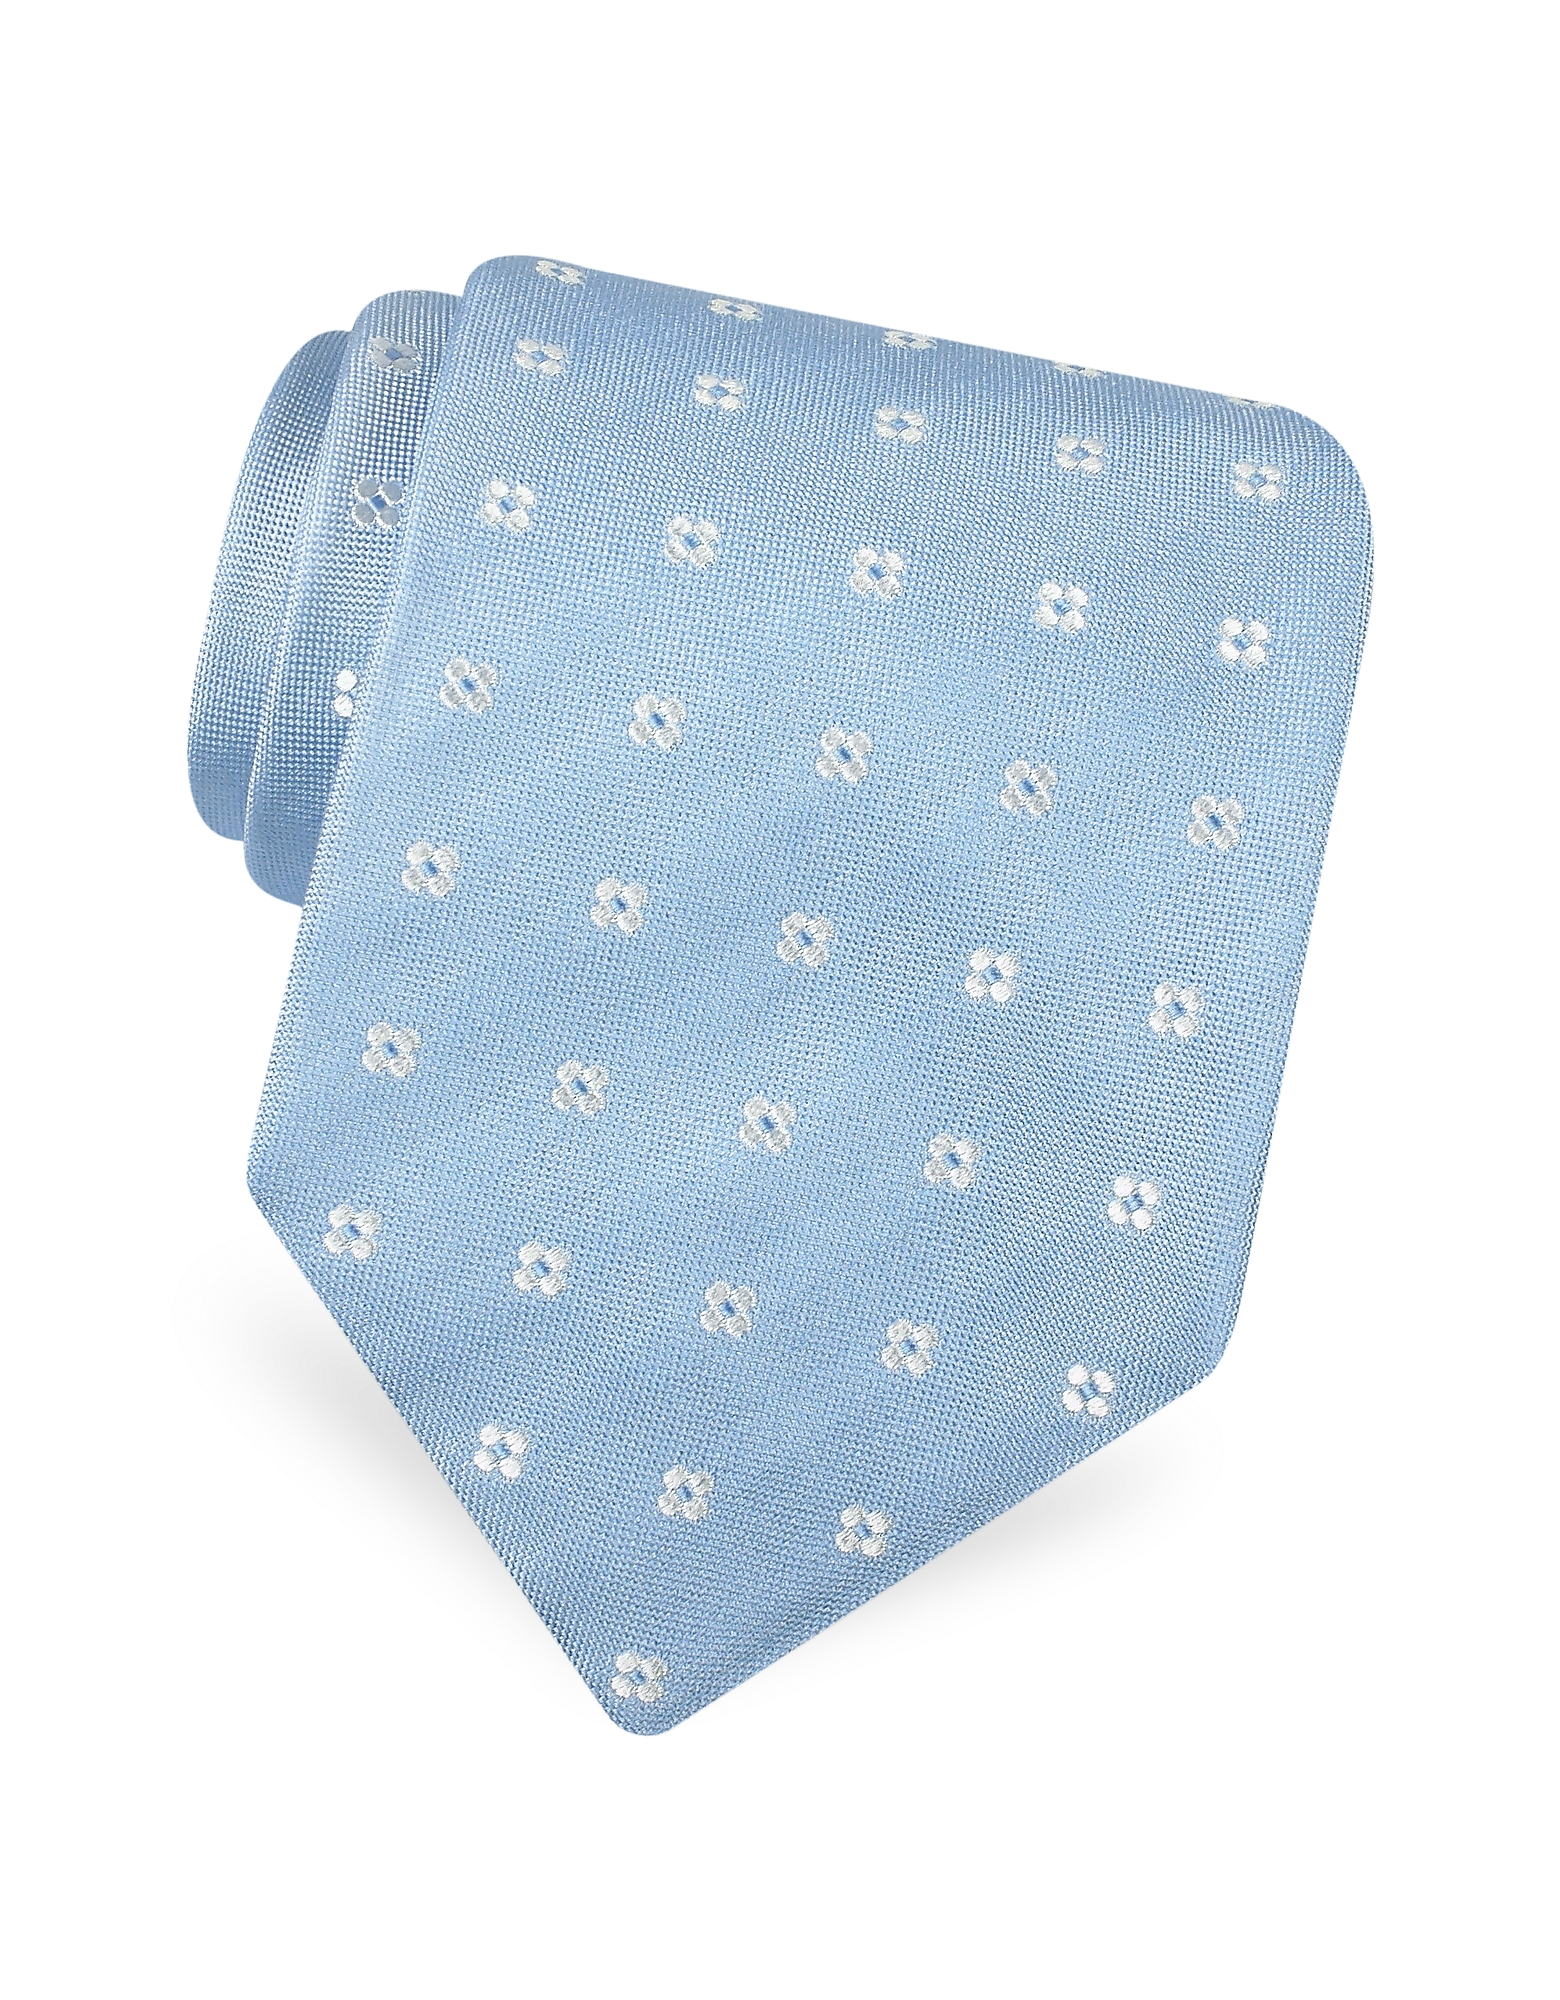 Forzieri Ties, Gold Line- Rounded Flower Dots Woven Silk Tie